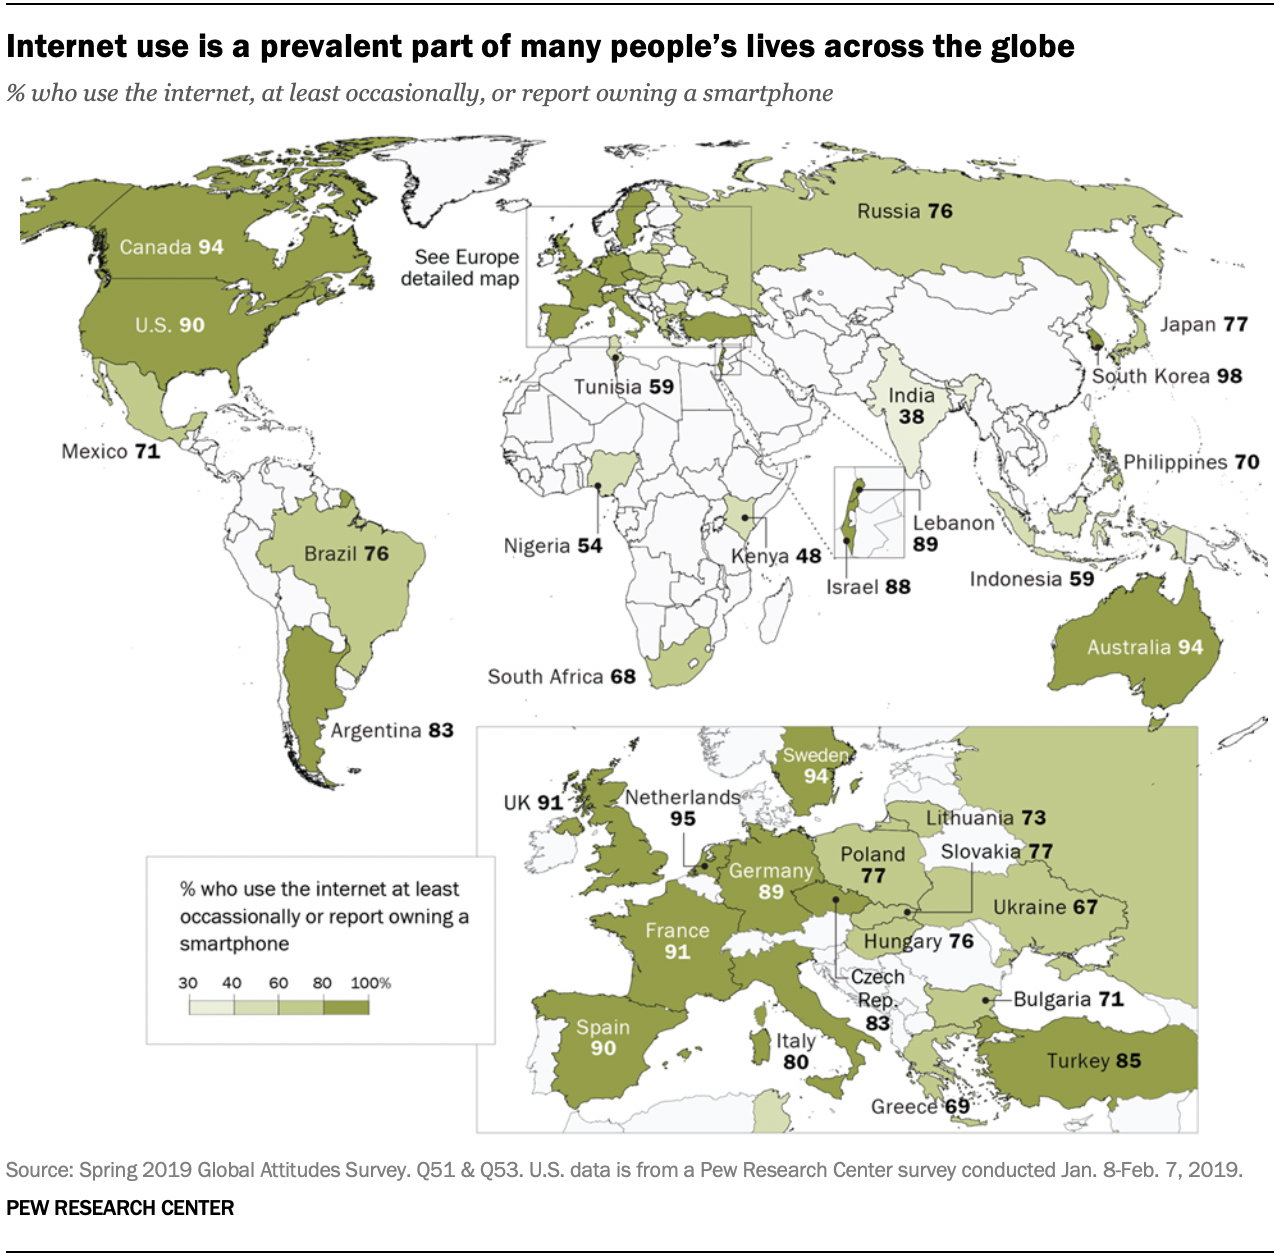 Internet use is a prevalent part of many people's lives across the globe